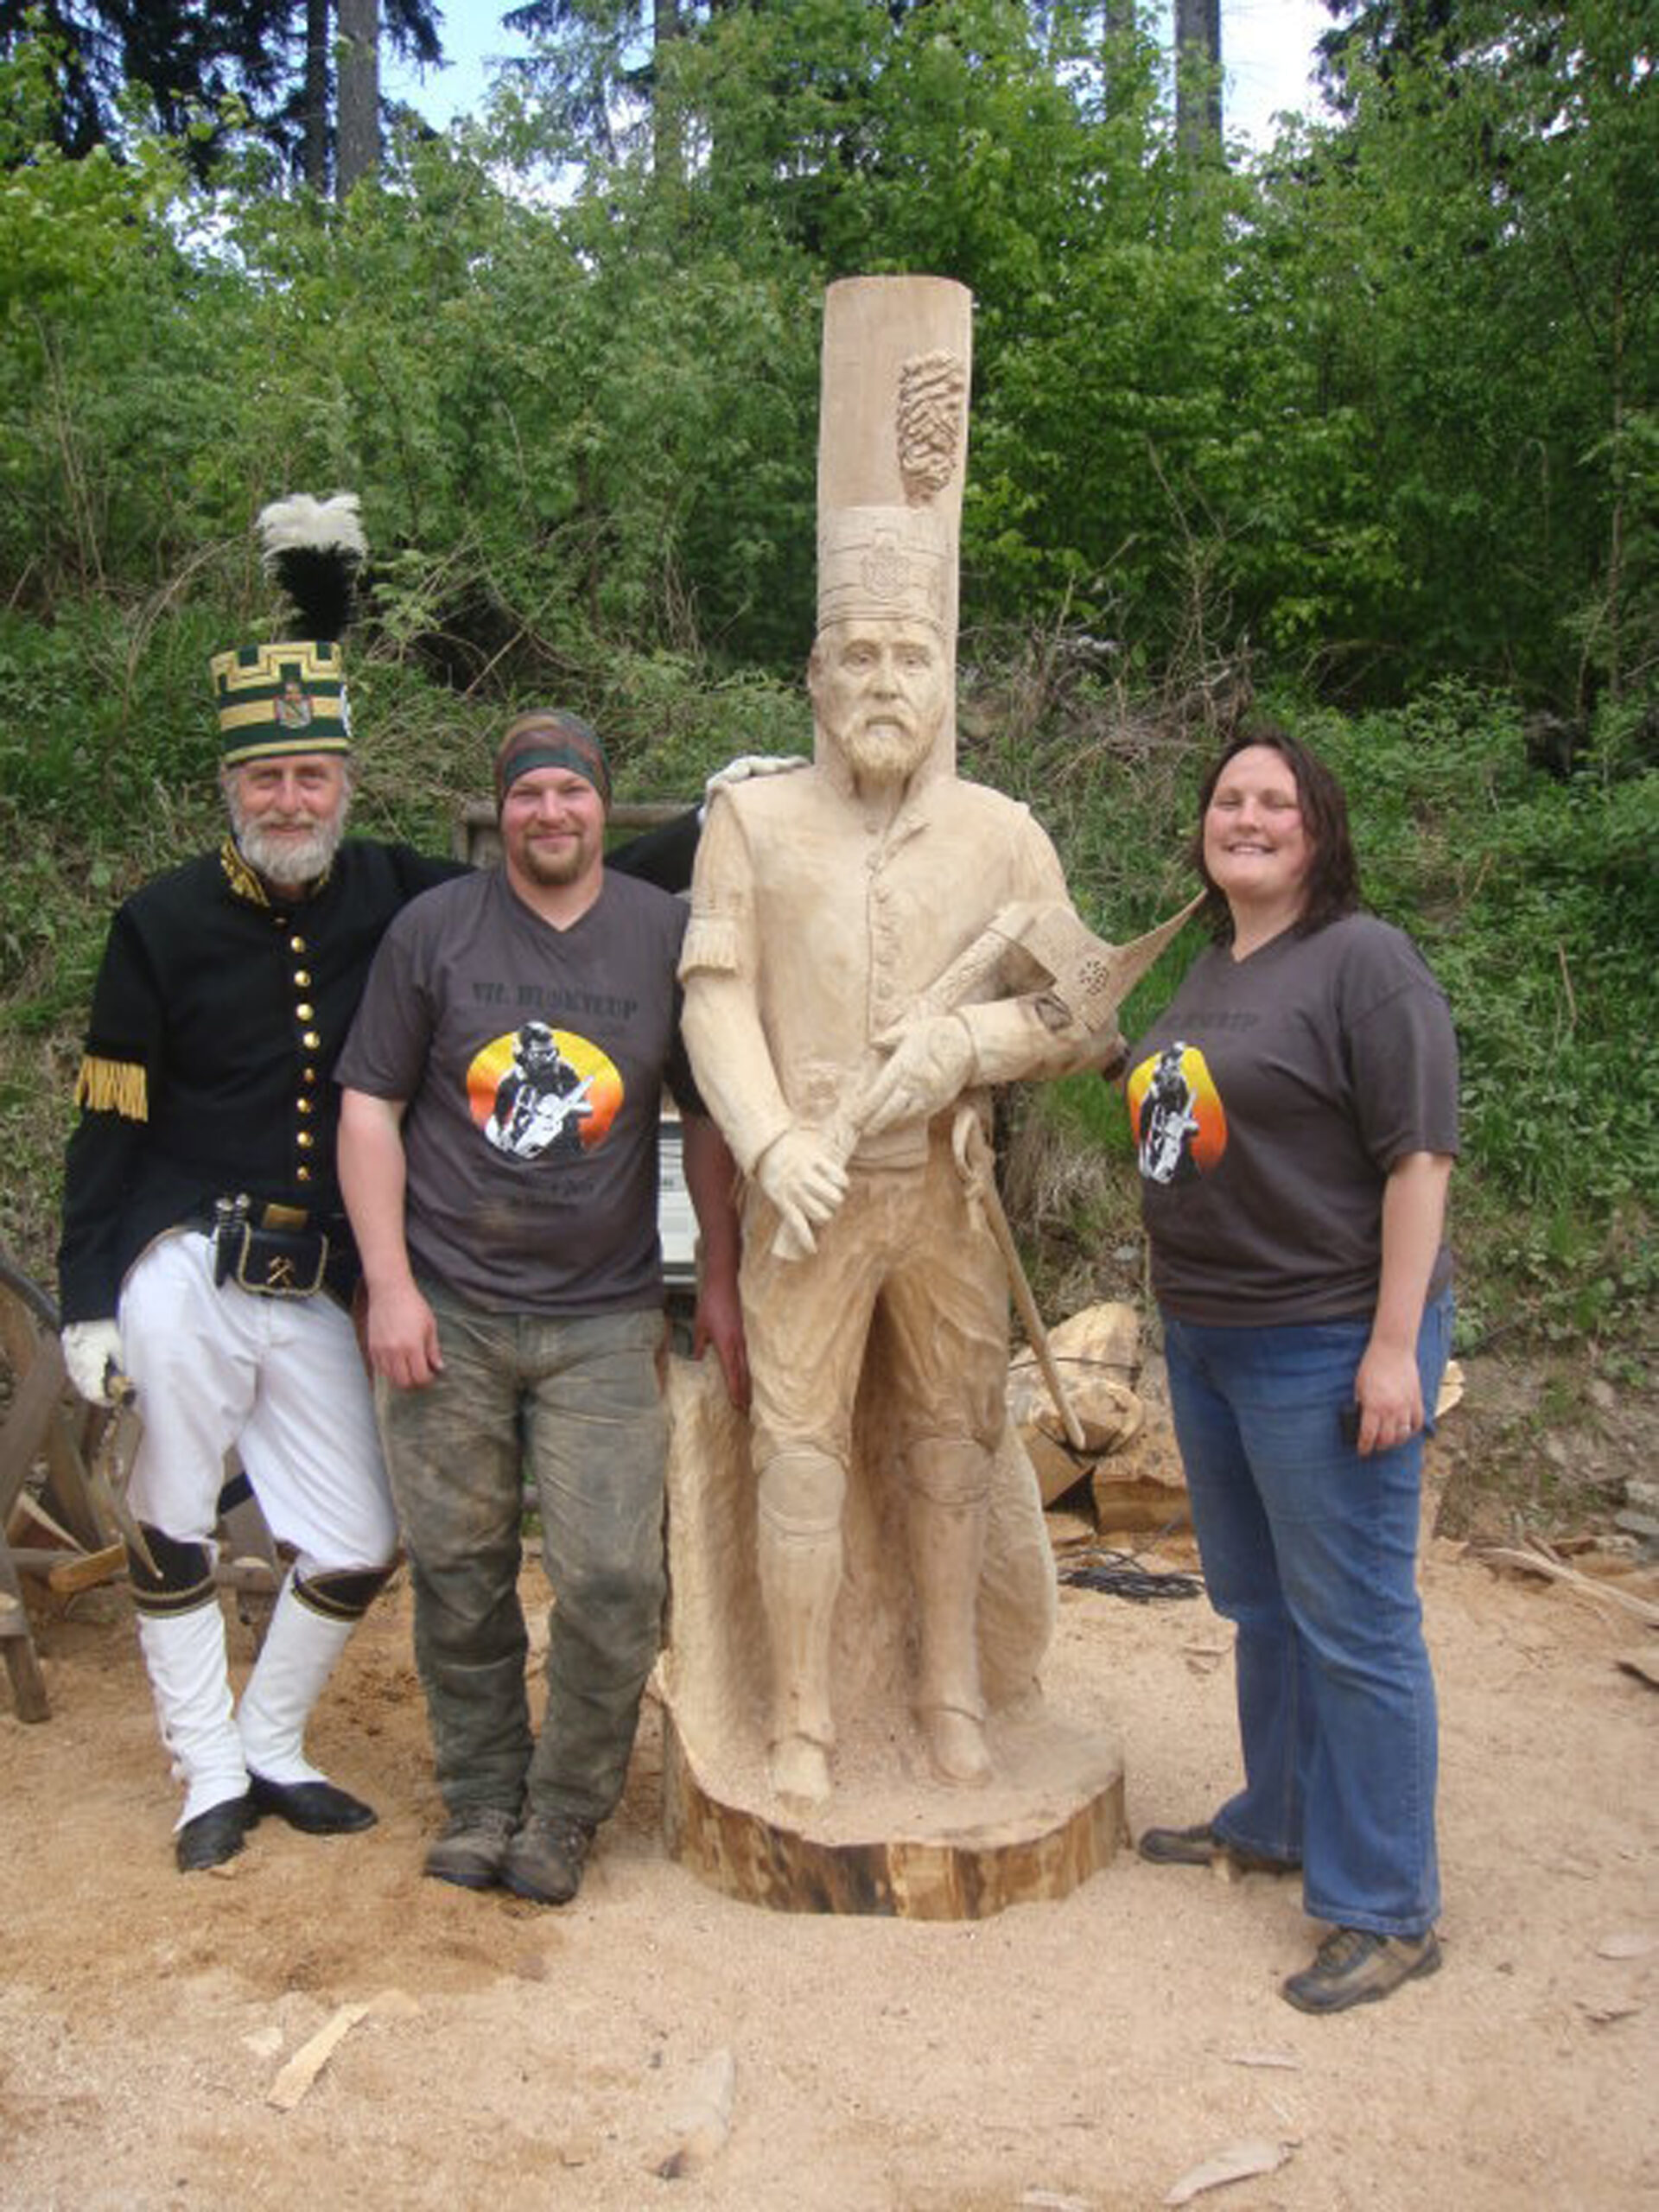 Simon and Liz O'Rourke pictured with Knut, an miner from the ore region and his likeness that simon carved in oak at huskycup 2010